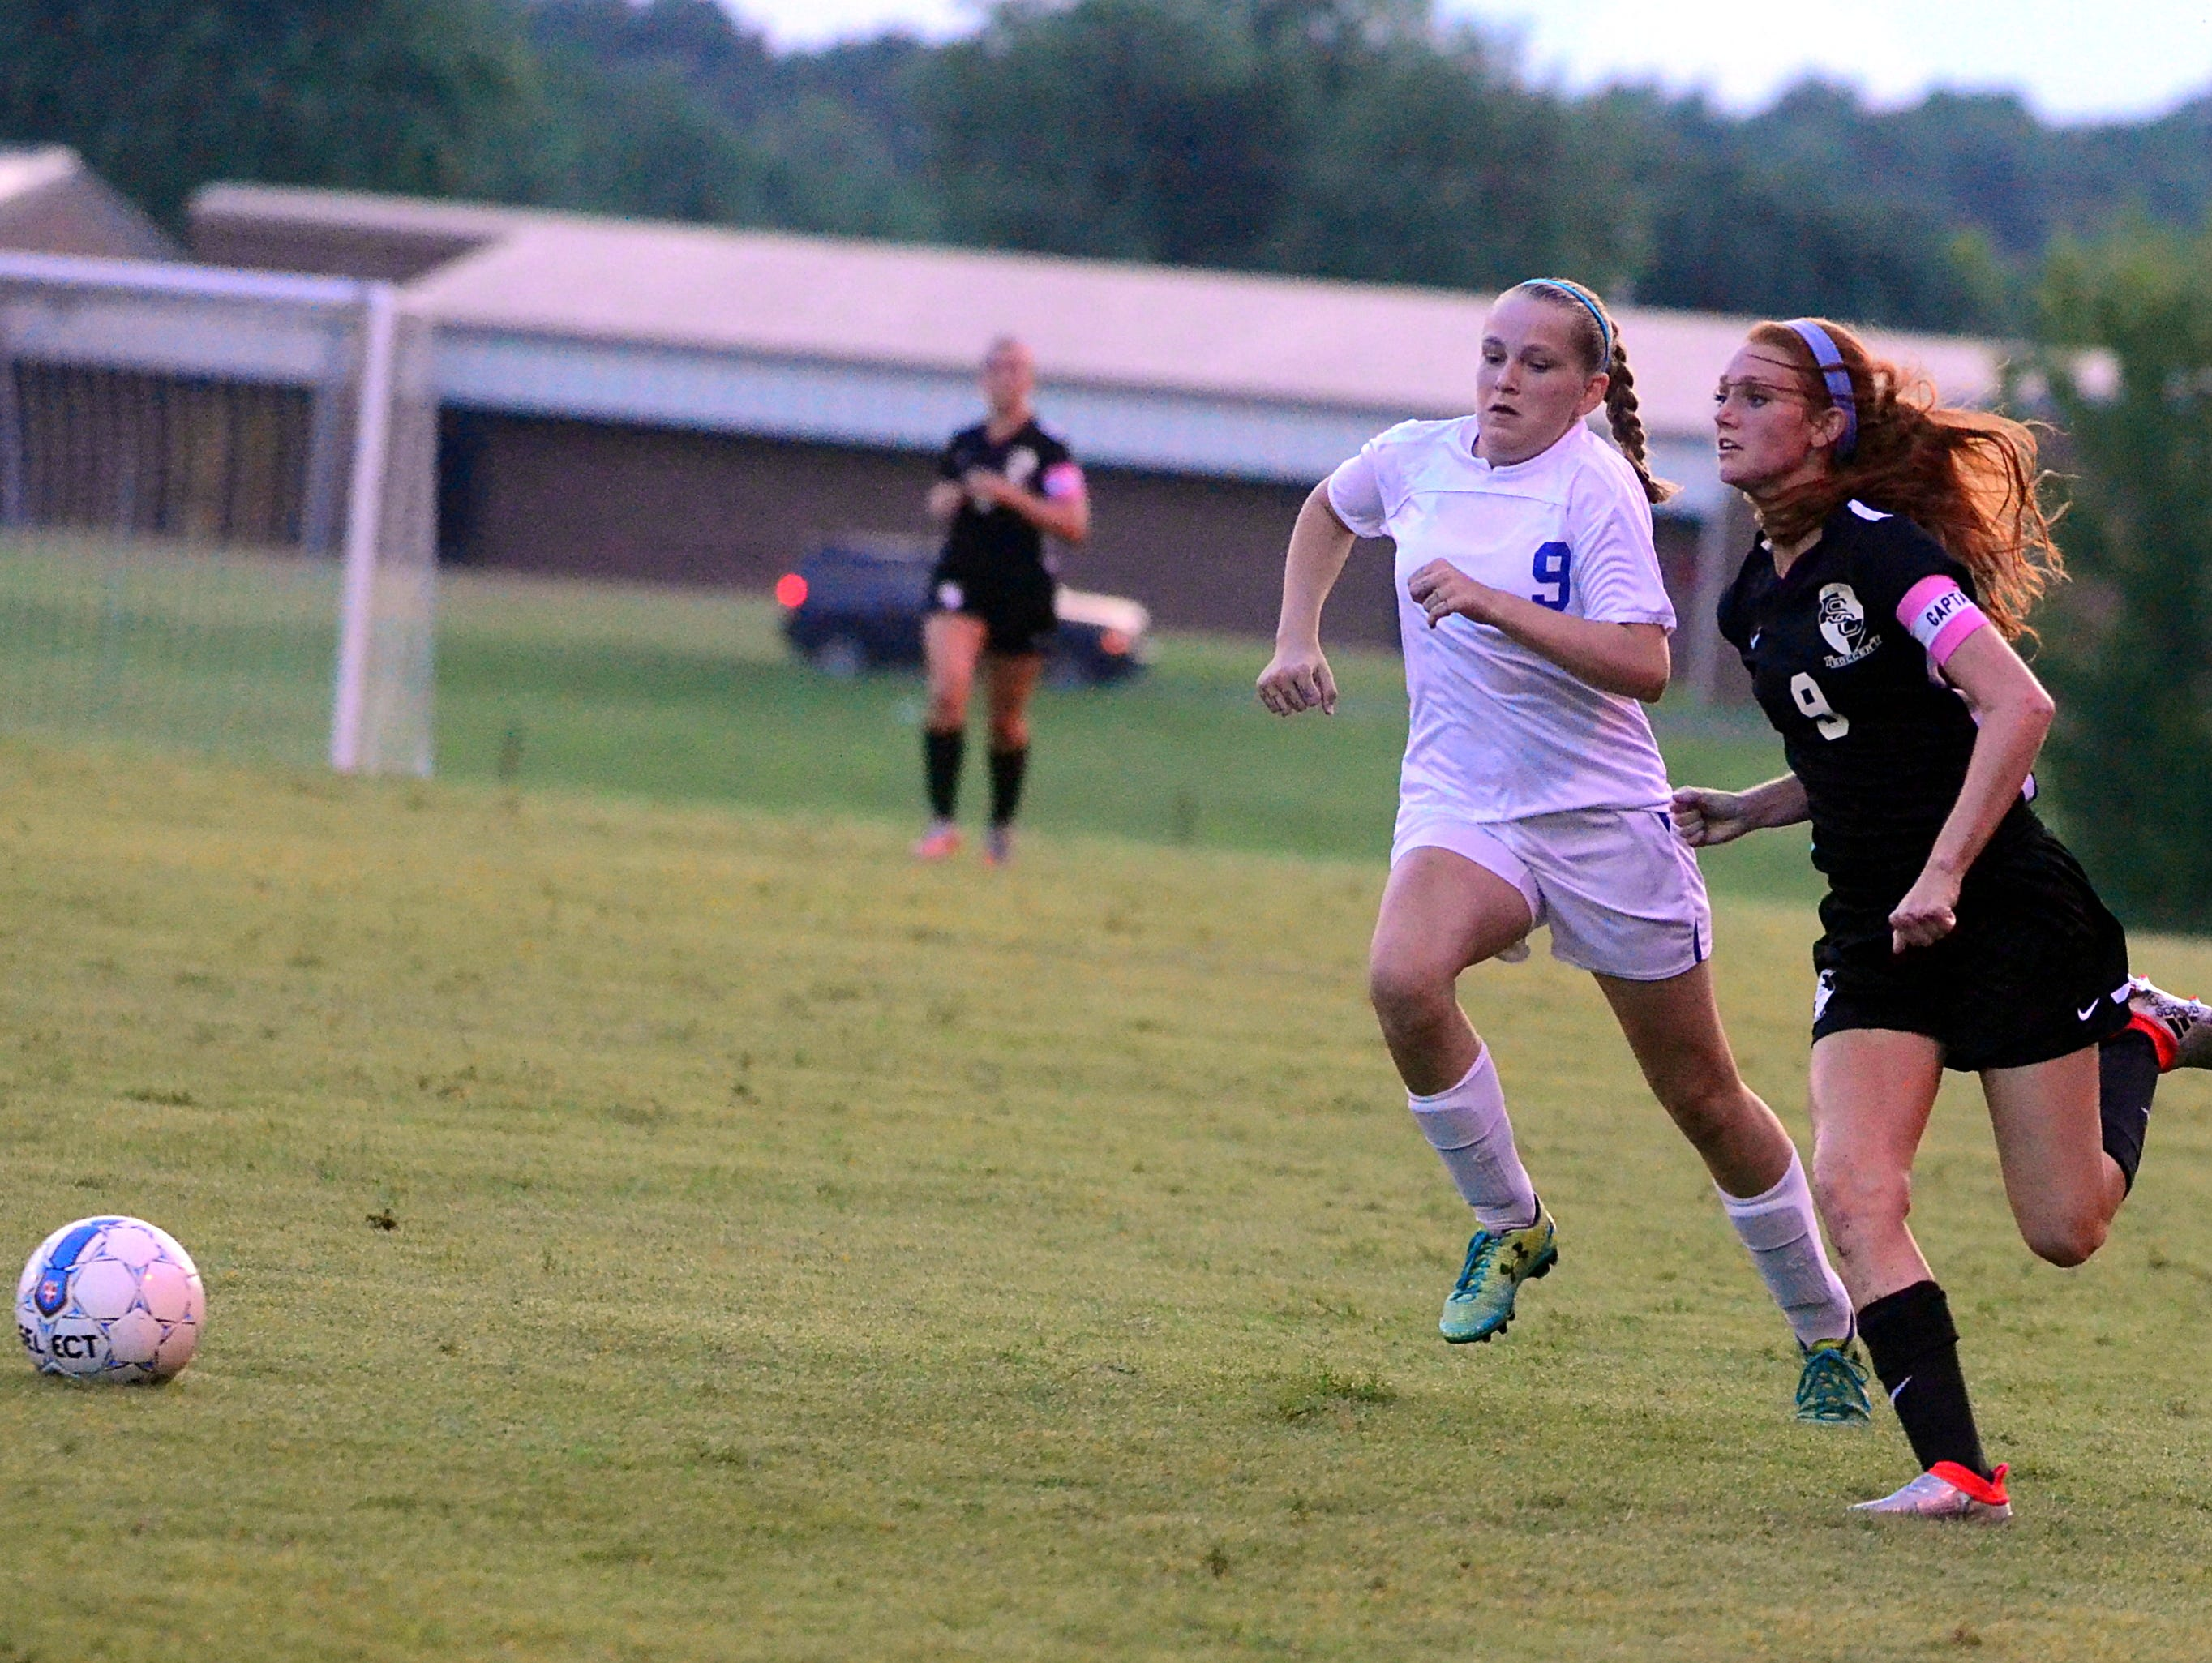 Station Camp High senior Megan Brinkley battles White House sophomore Haley Moran for a loose ball during first-half action. Brinkley had an assist in the Lady Bison's 5-0 victory.